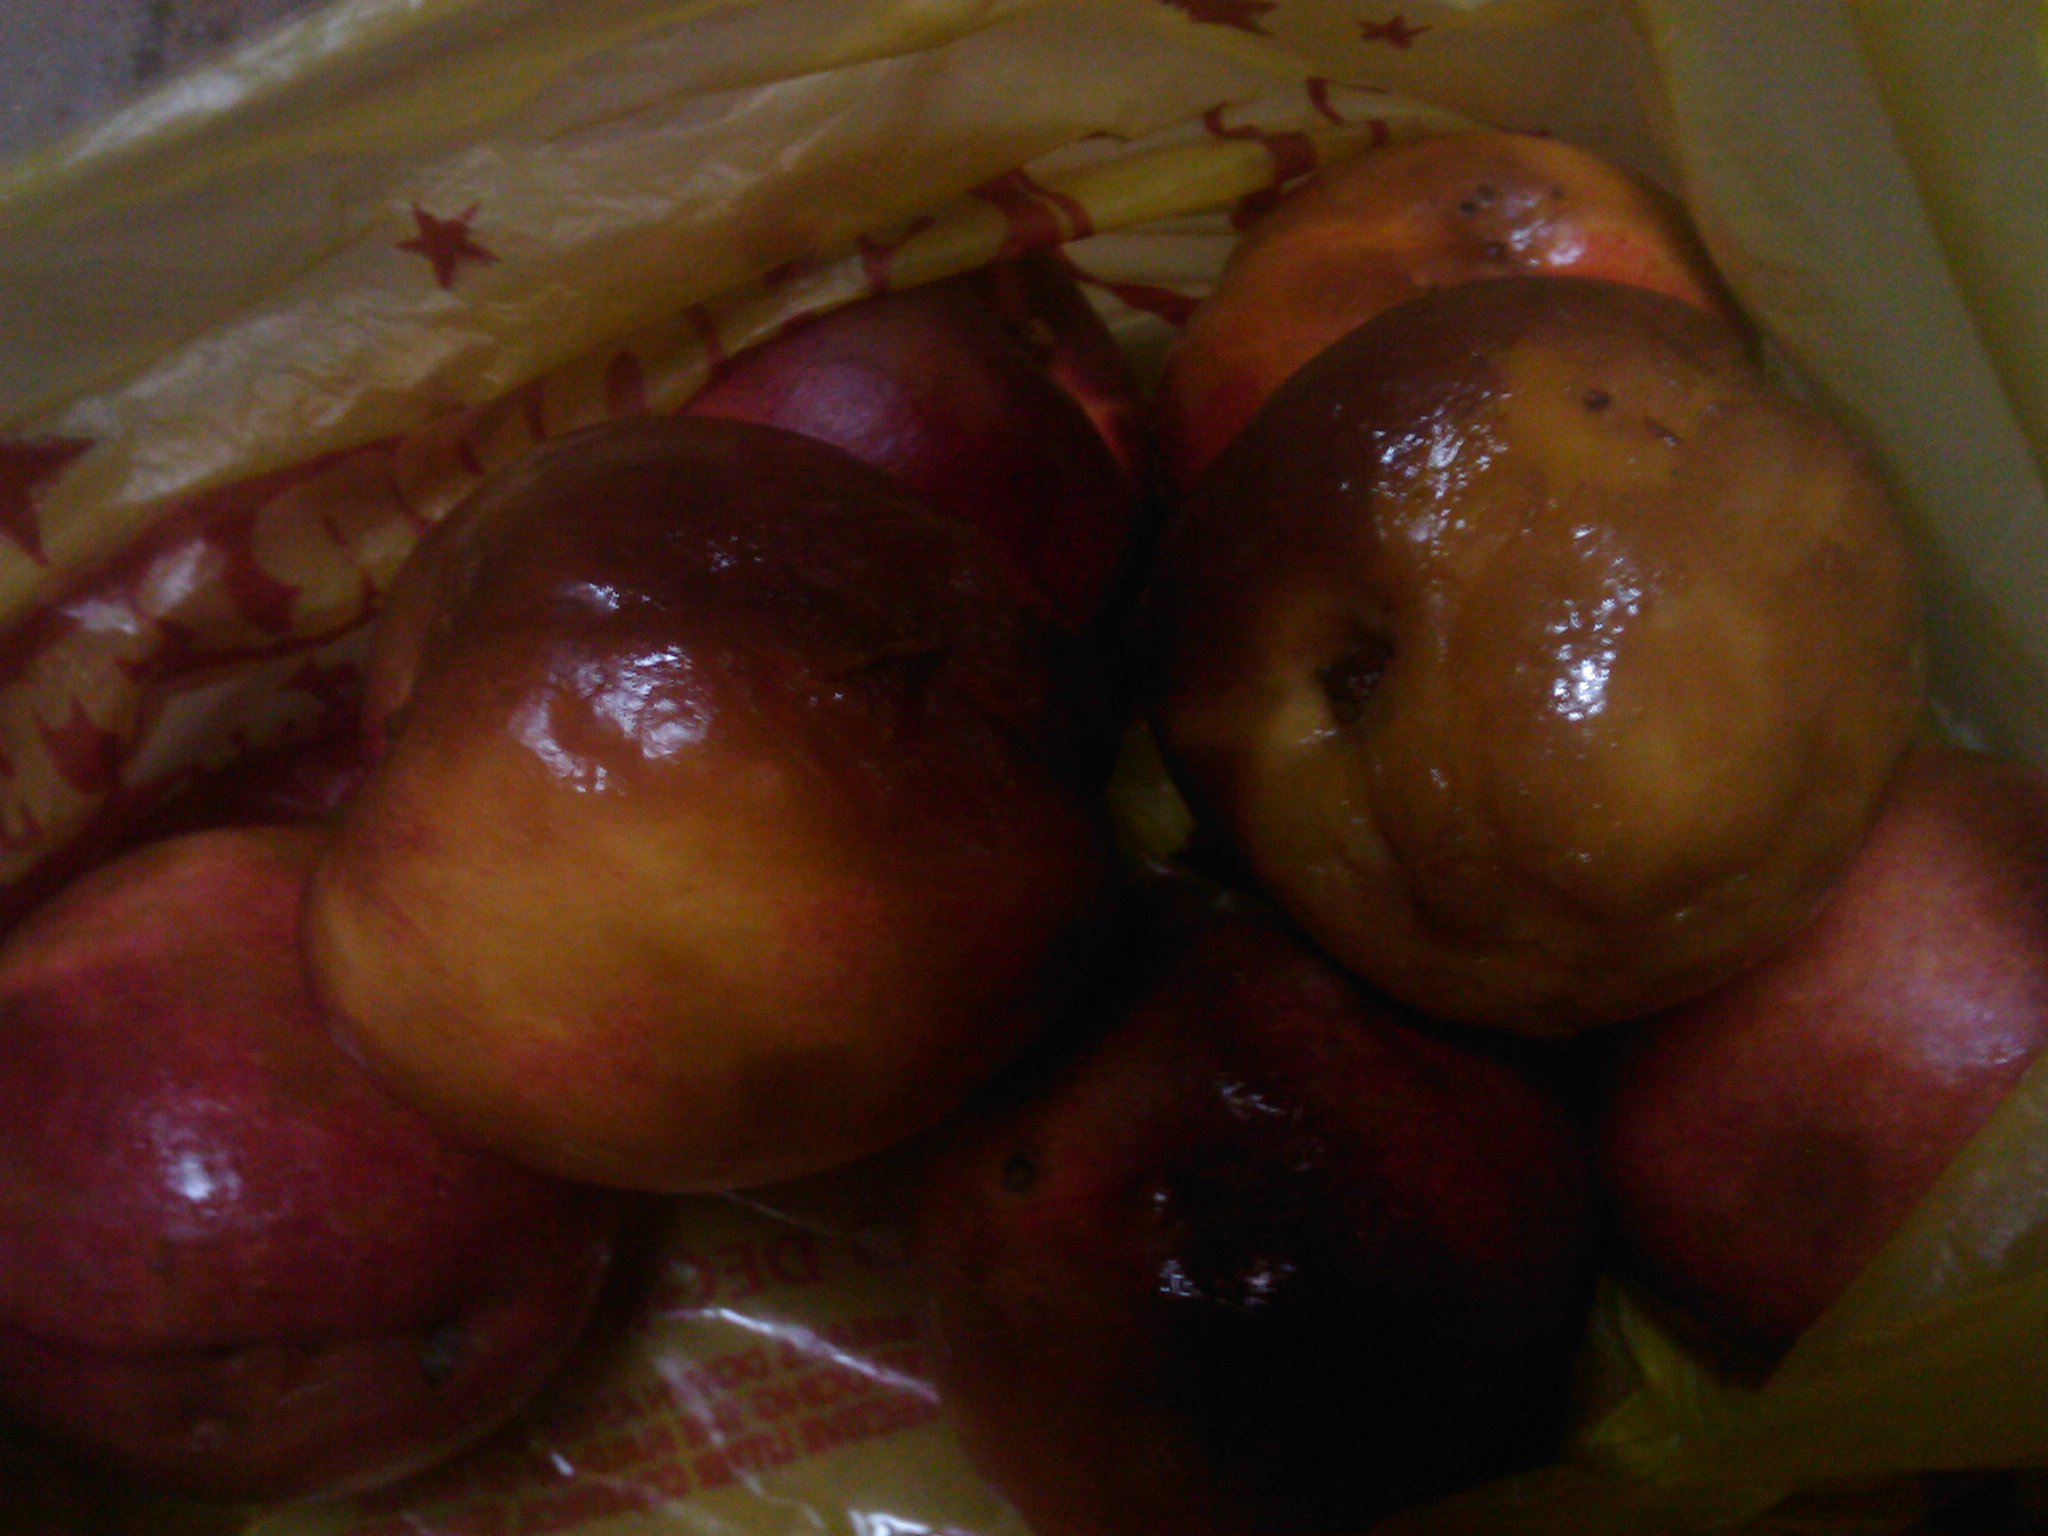 the bag of rotten nectarines